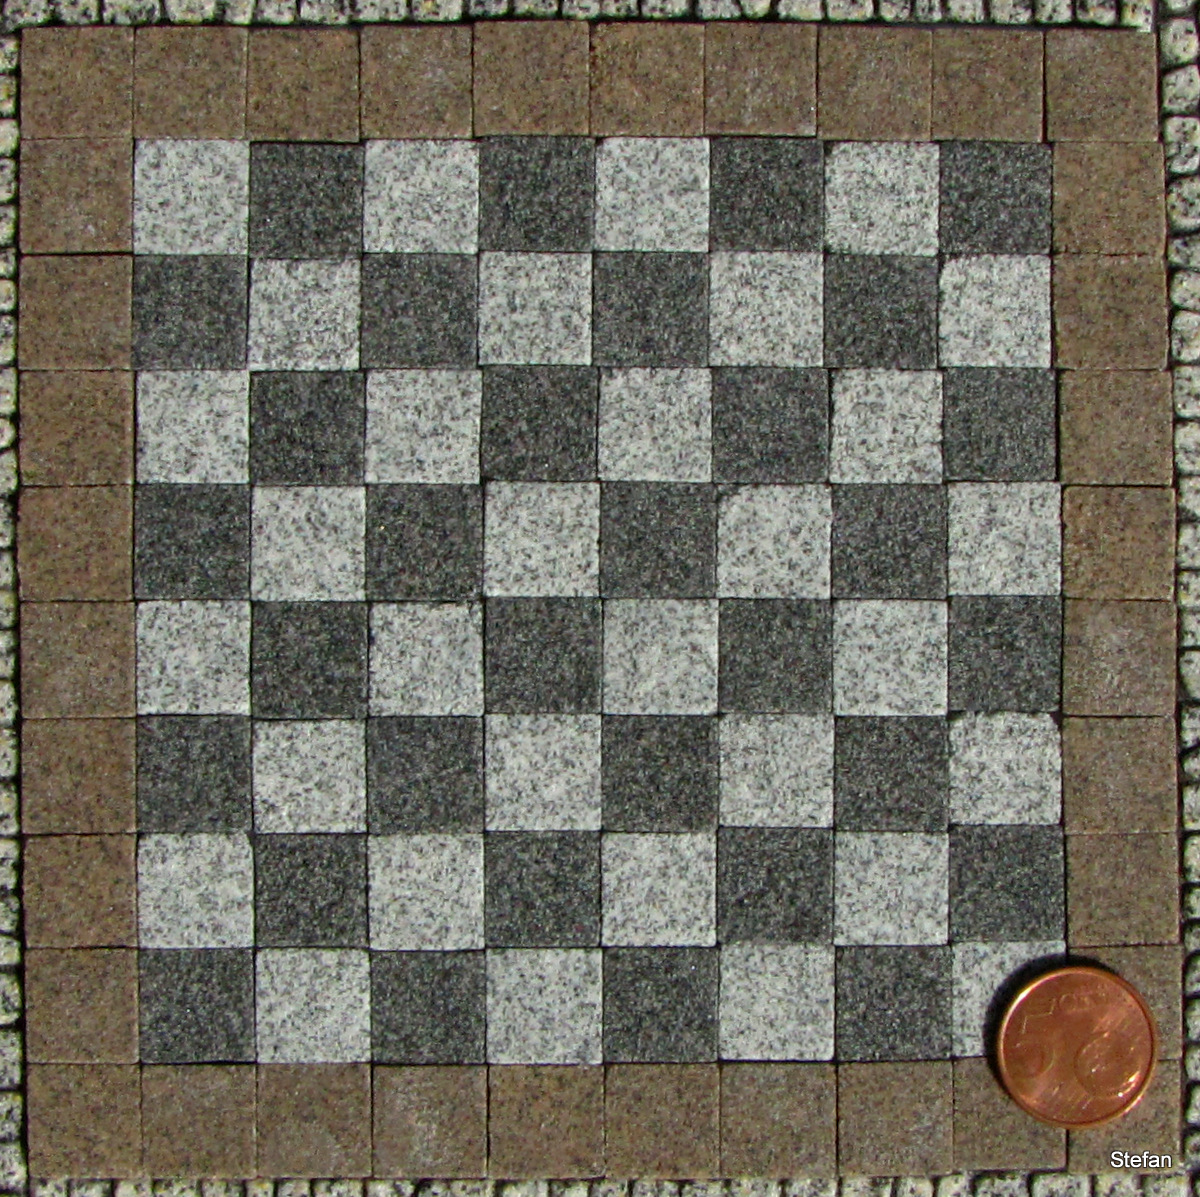 Schachbrett mit Umrandung (Checkerboard with border)